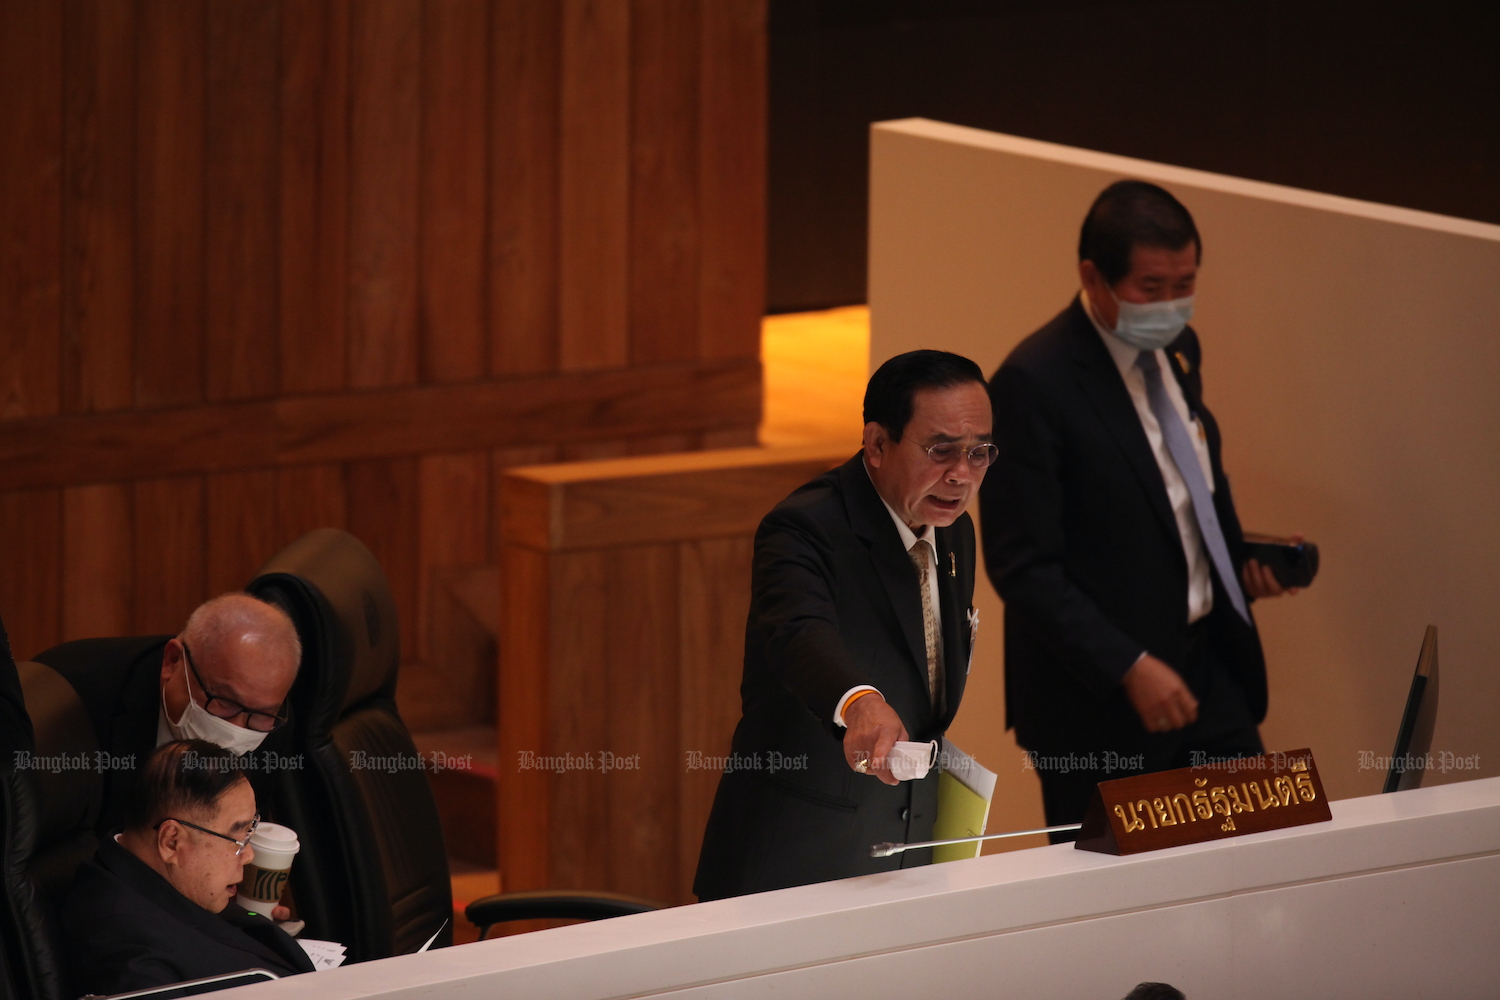 Prime Minister Prayut Chan-o-cha gestures as Deputy Prime Minister Prawit Wongsuwon (left) looks on following the no-confidence vote on Saturday morning in Parliamant. (Photo: Apichart Jinakul)